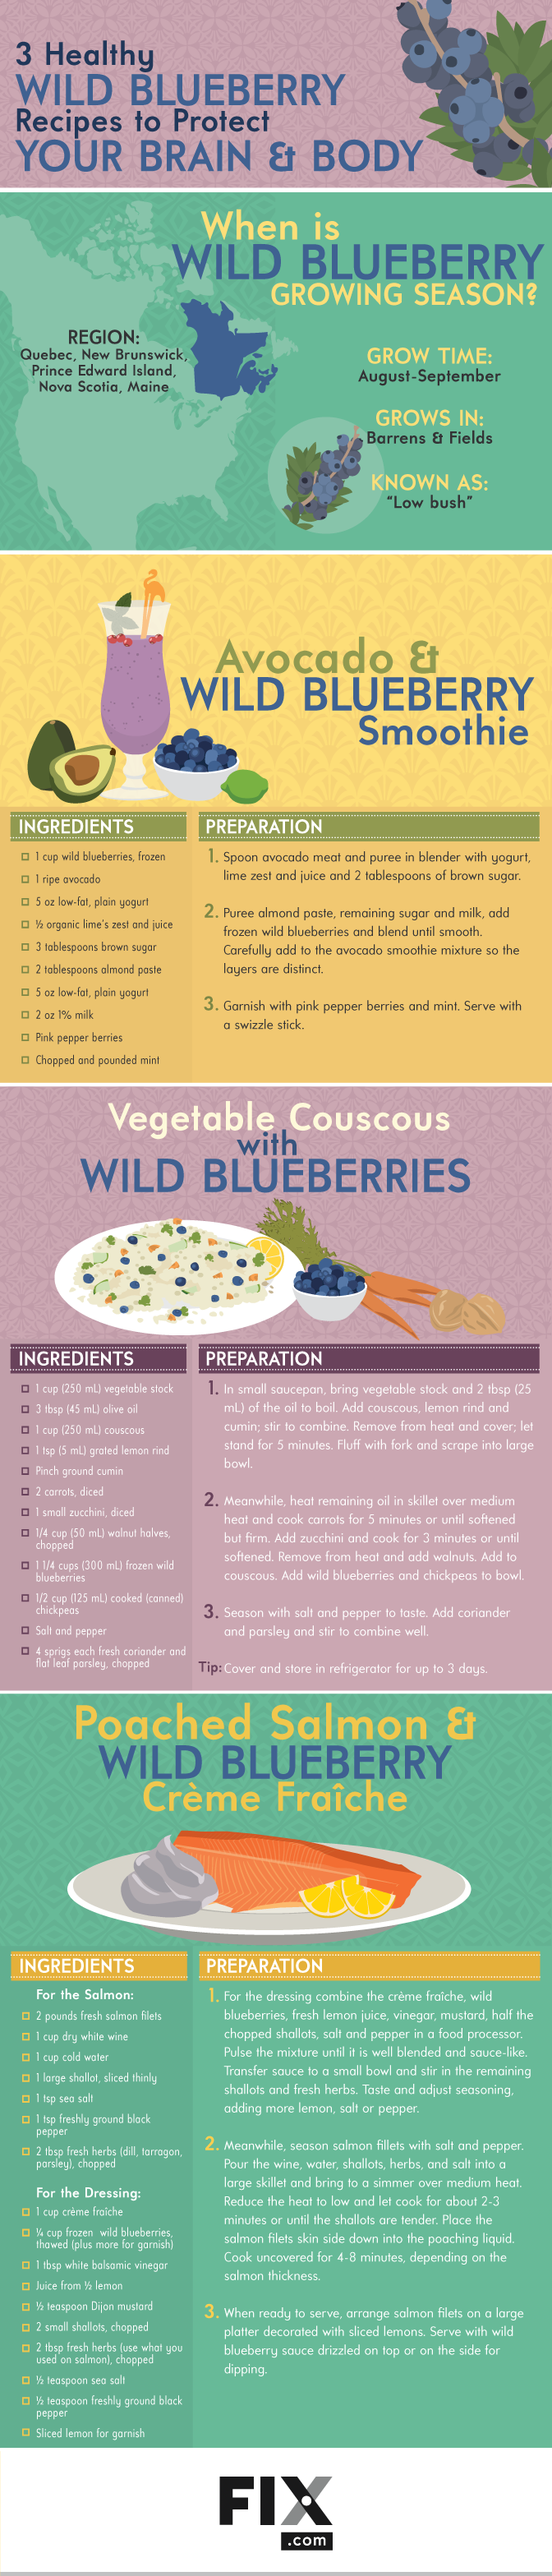 3 Healthy Wild Blueberry Recipes to Protect Your Brain and Body #infographic